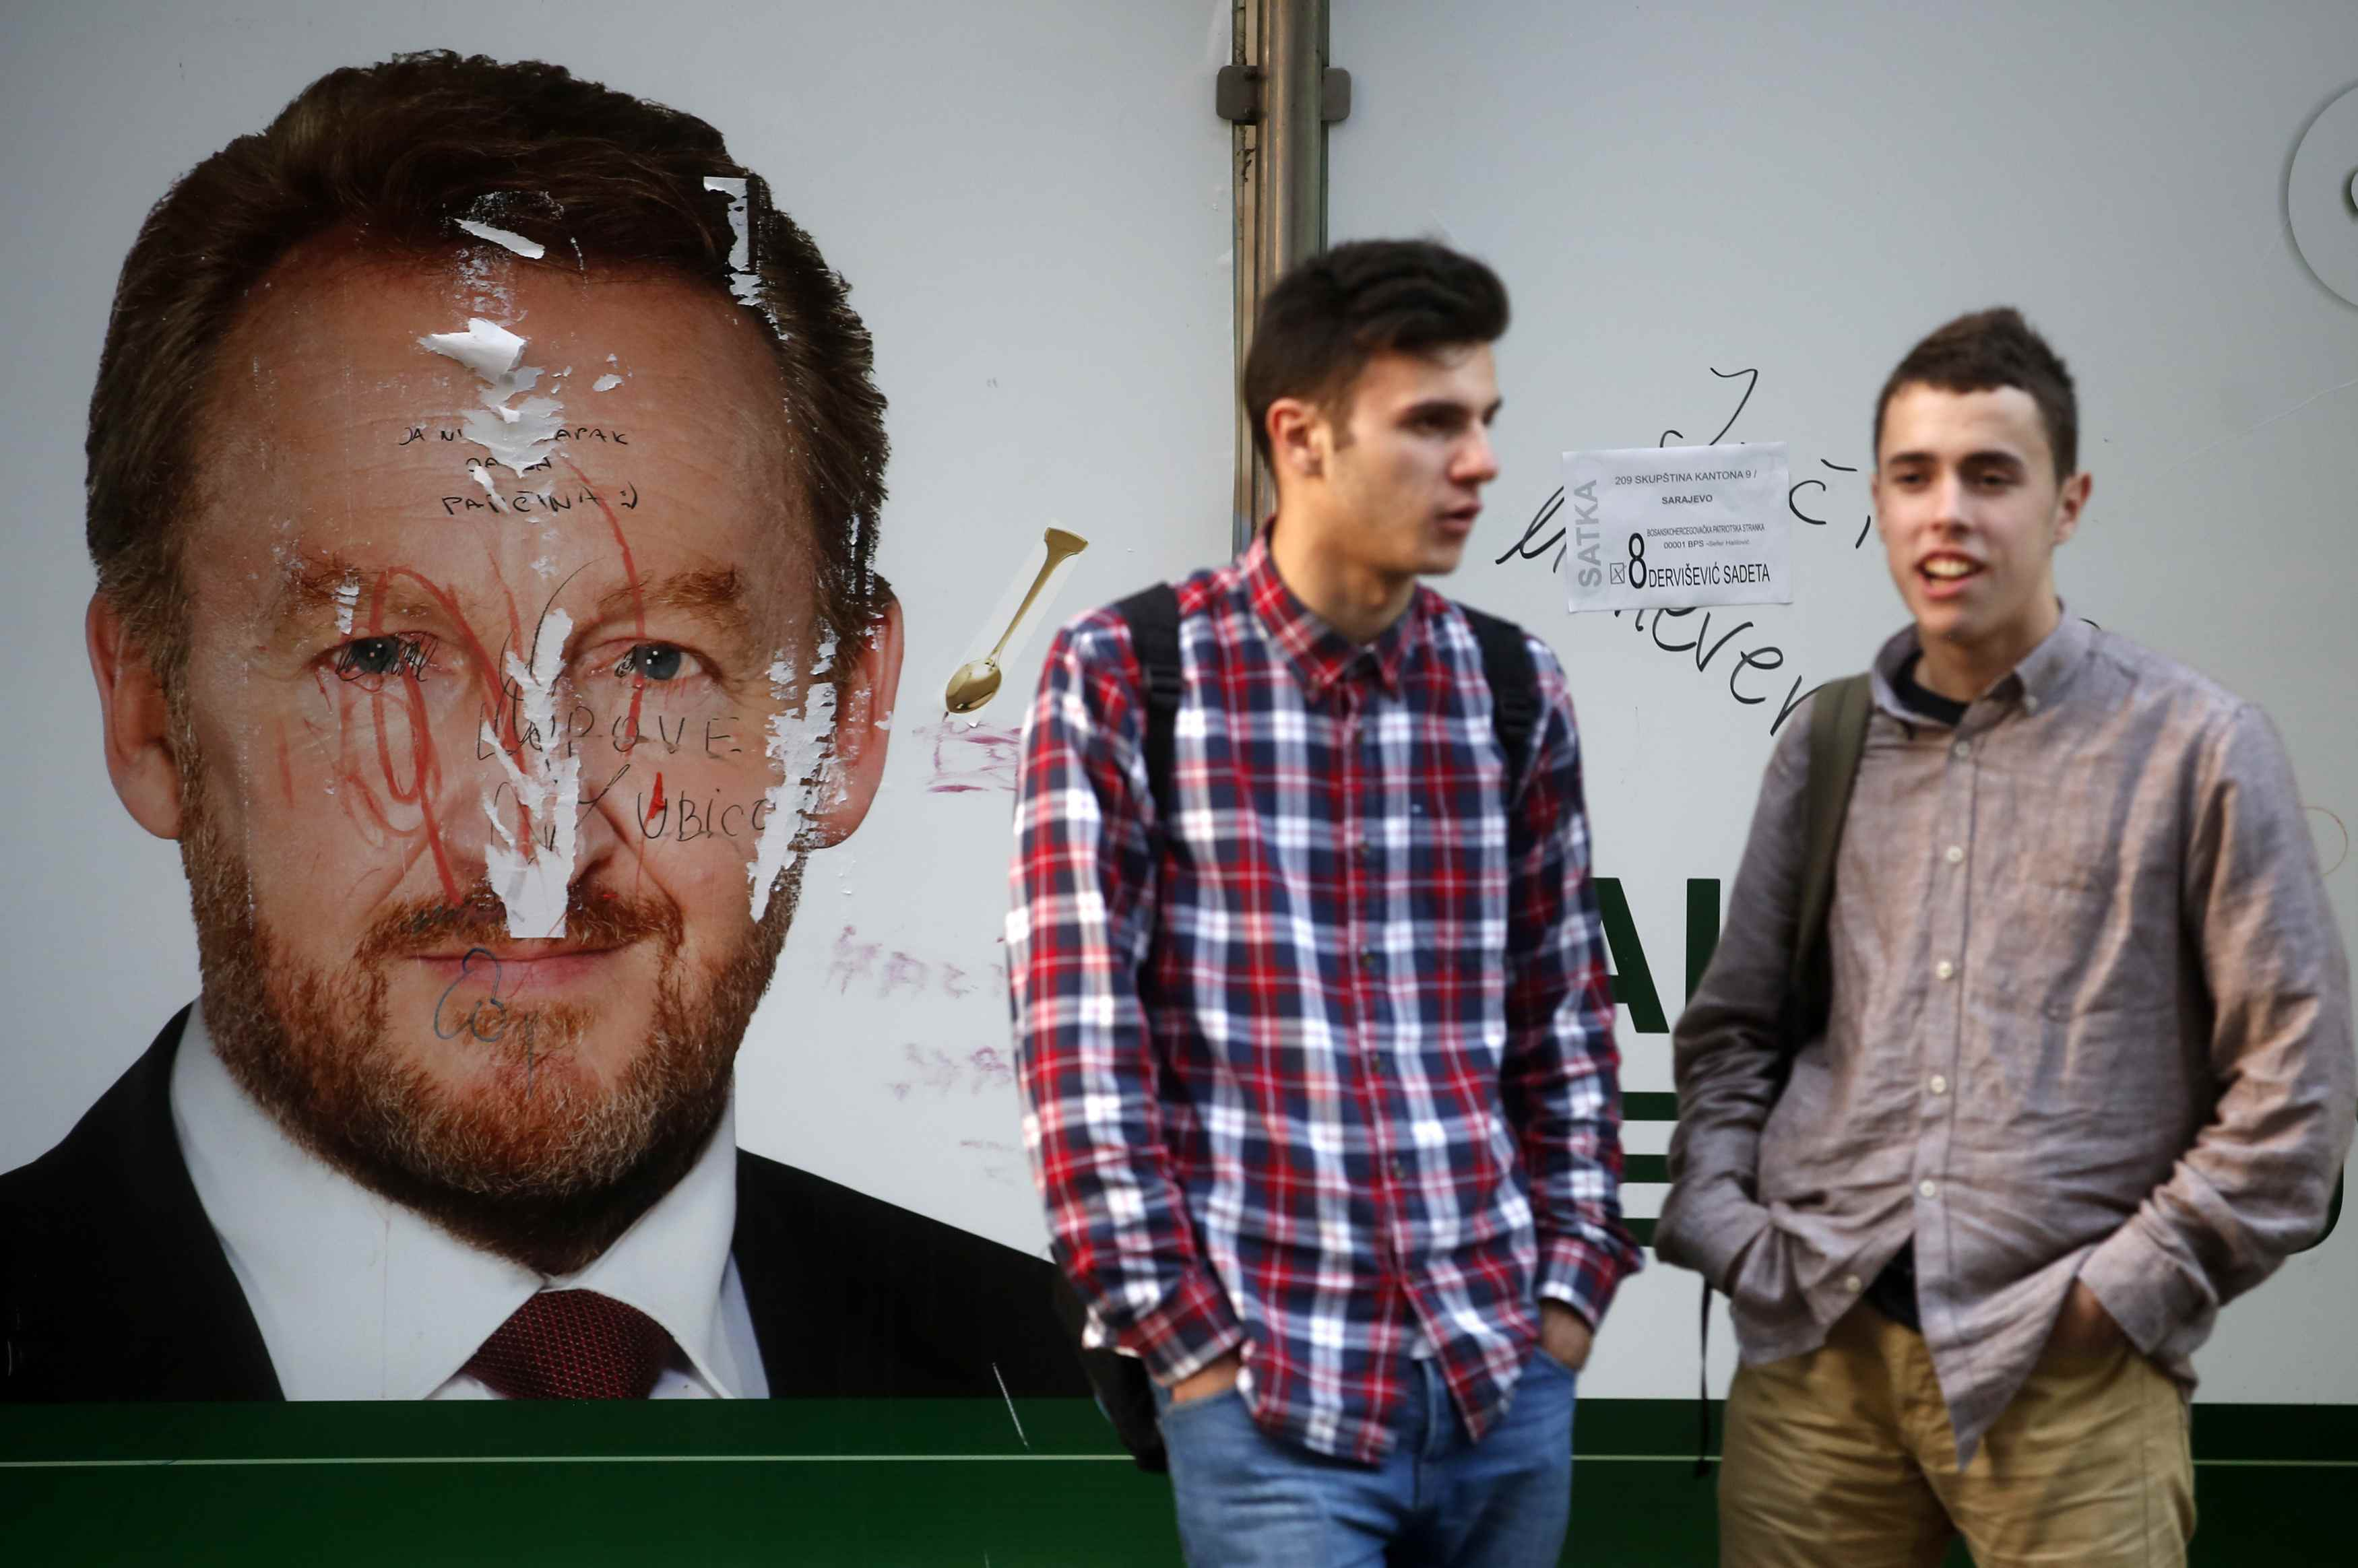 Men stand at a bus station in front of a defaced election poster in Sarajevo, October 10, 2014. Bosnians will vote on Sunday for a parliamentary and presidential election that could break the reform deadlock in the ethnically divided country or deepen div